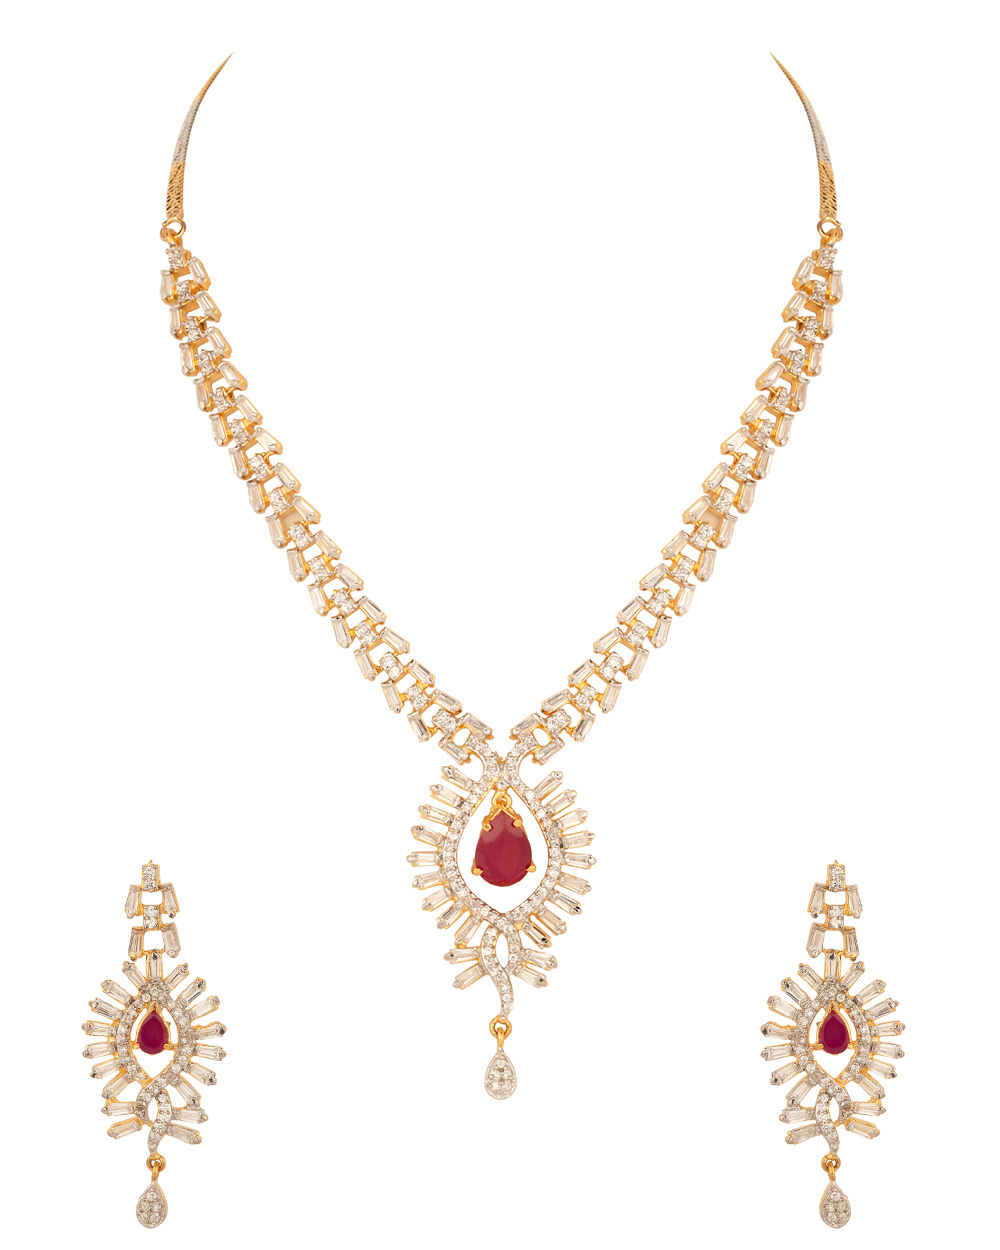 Buy Gold Plated Cz Necklace Set With Maroon Stones; Drop Design ...